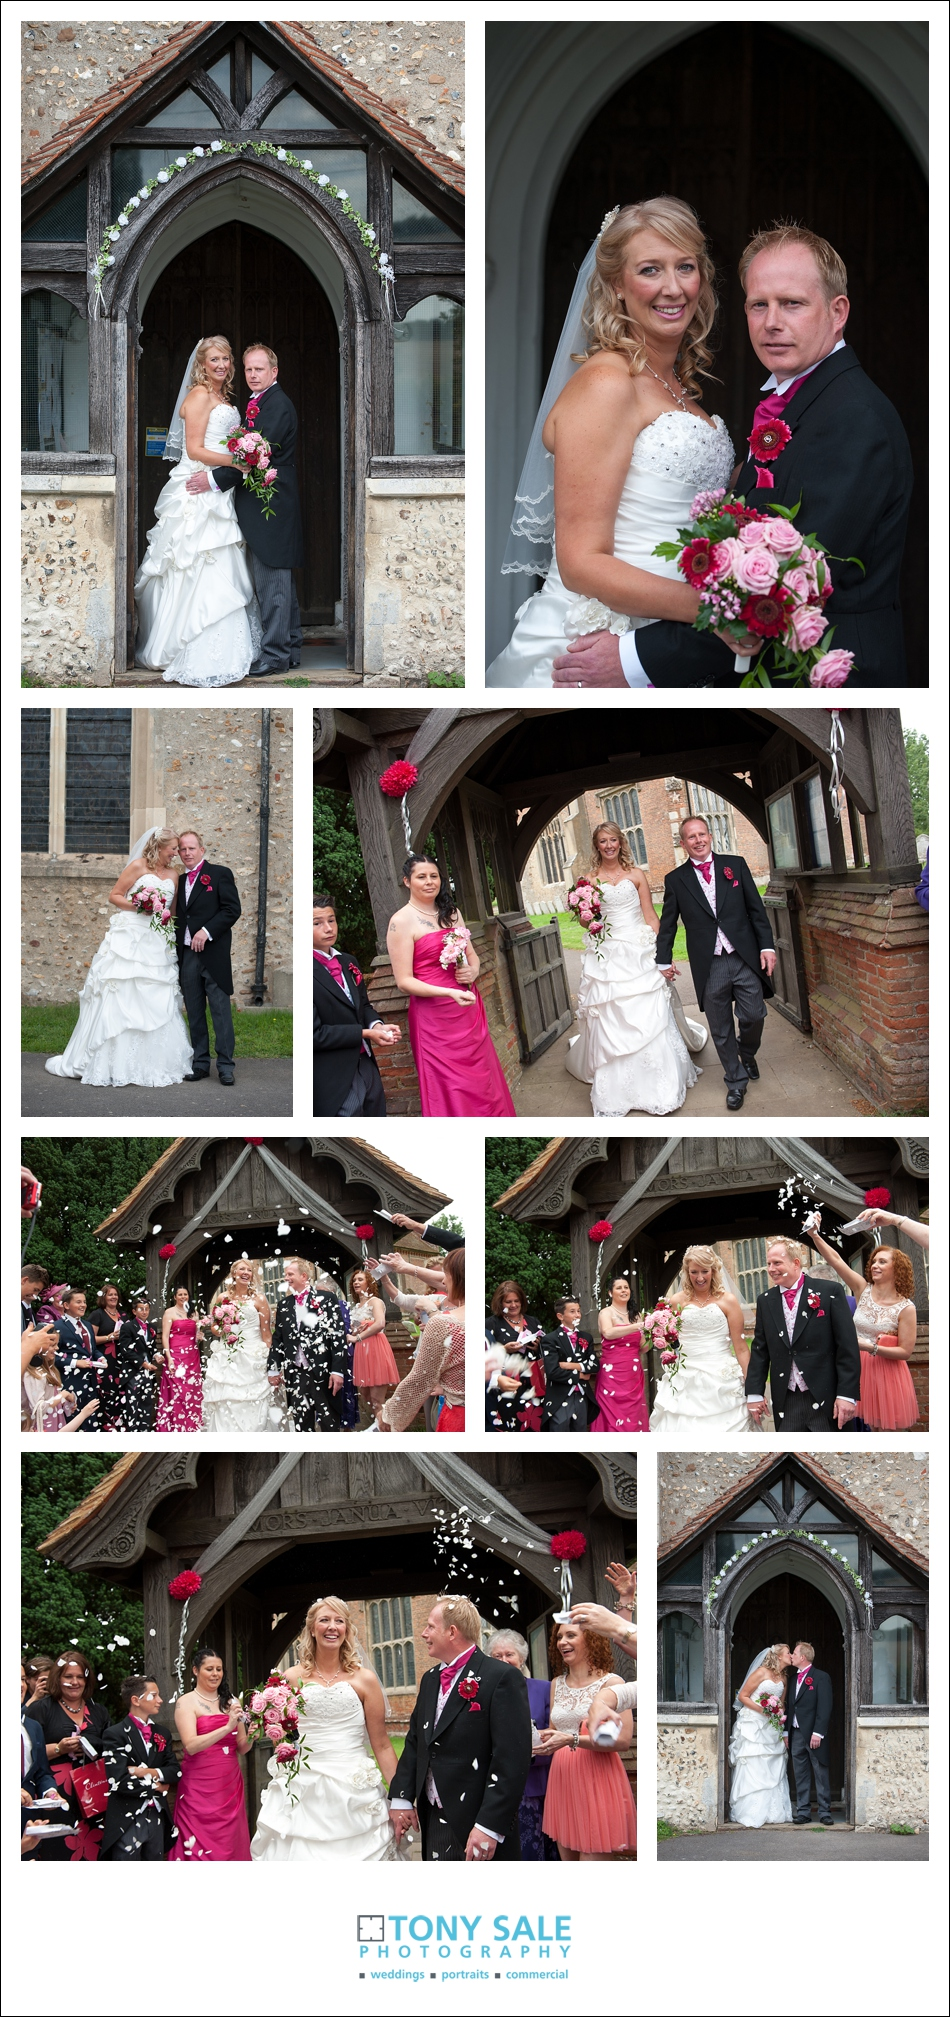 Tony Sale Photography_Gosfield Wedding_007